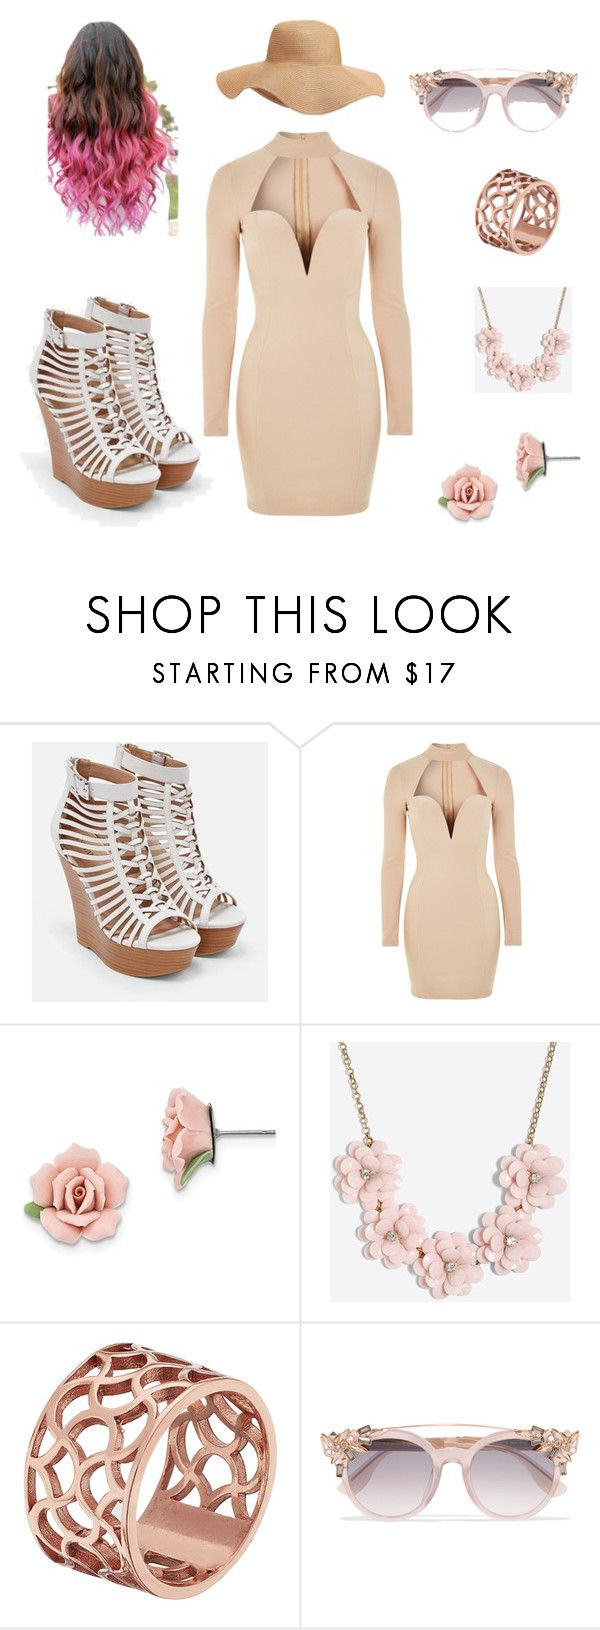 """""""Untitled #8"""" by butterflyking ❤ liked on Polyvore featuring JustFab, Rare London, 1928, J.Crew, Tartesia, Jimmy Choo and Old Navy"""